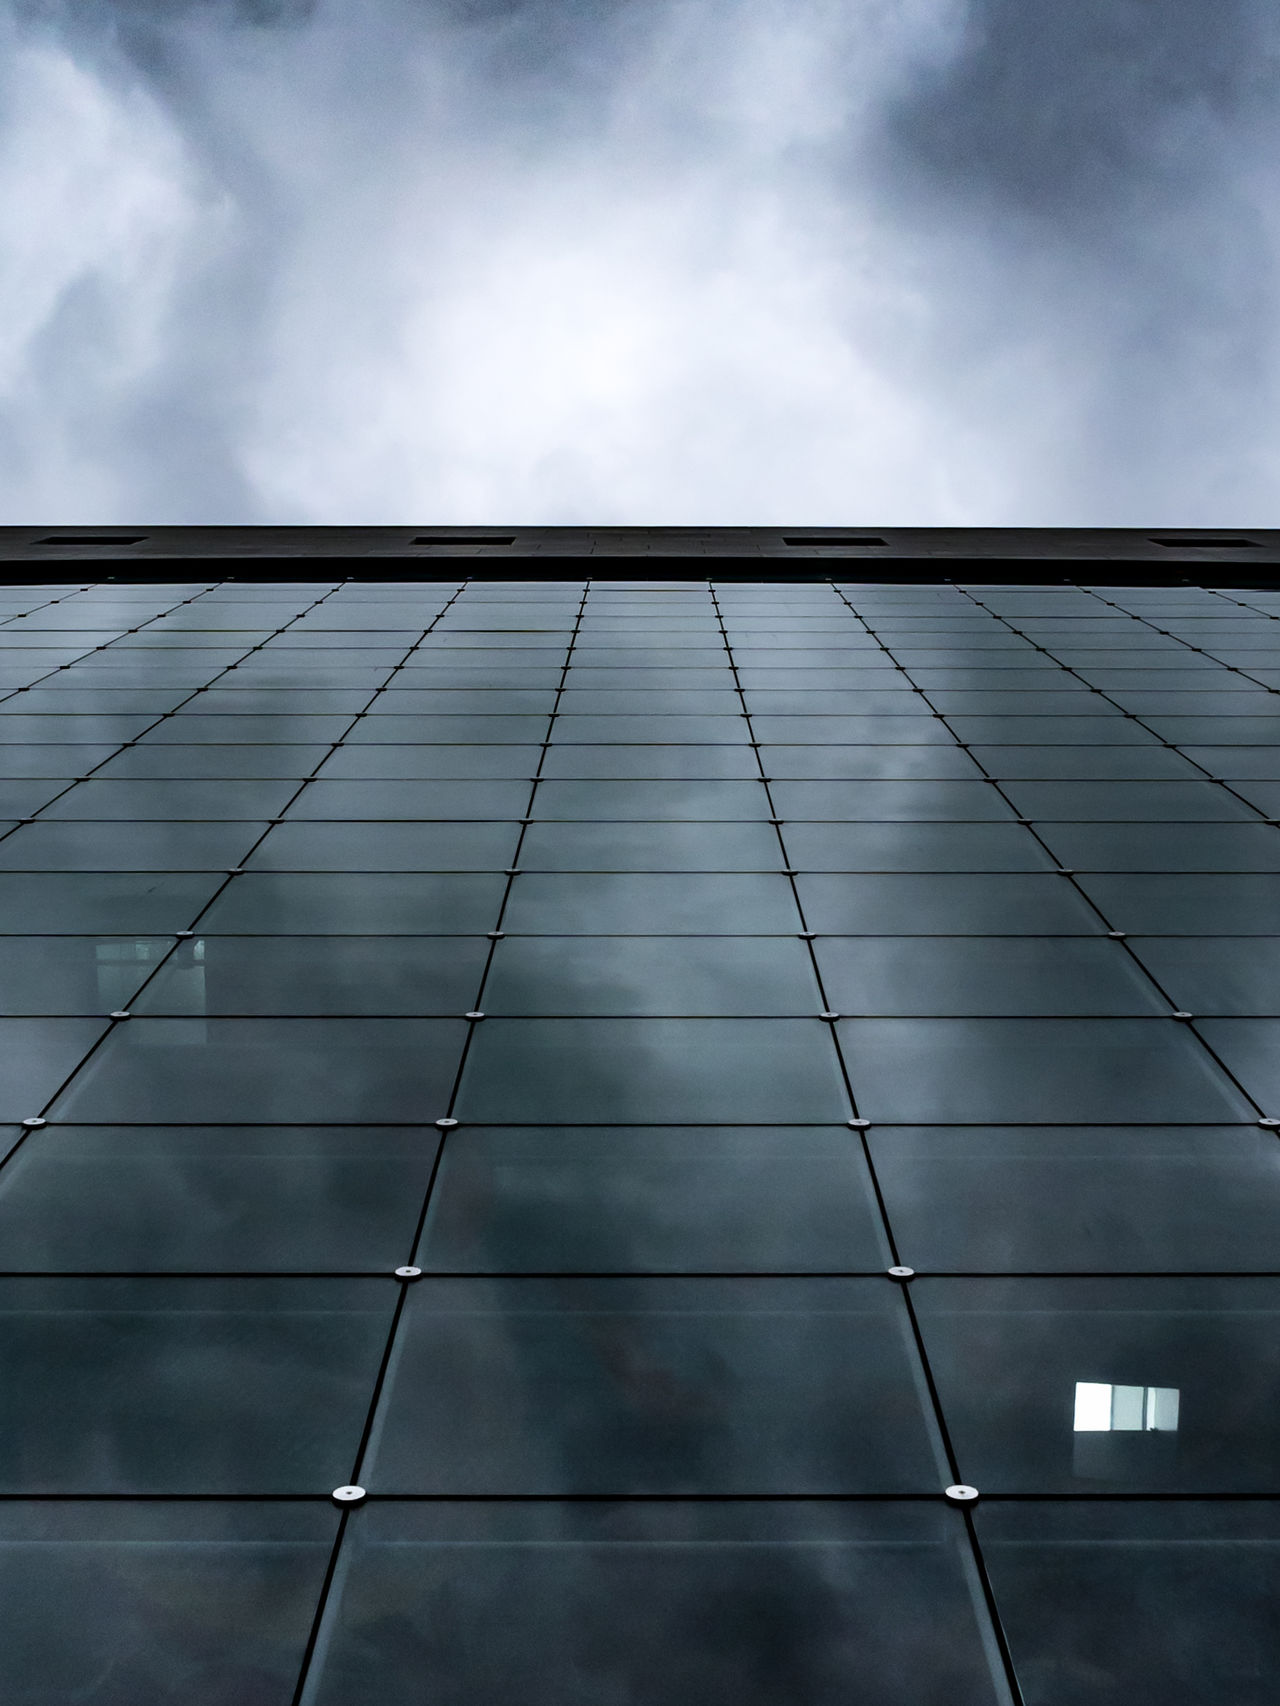 Looking up at glass and steel... Architecture Building Exterior Built Structure Business City Cloud - Sky Cold Copy Space Dark Day Low Angle View Markthal Modern Netherlands No People Outdoors Reflection Rotterdam Sky The Architect - 2017 EyeEm Awards Trade